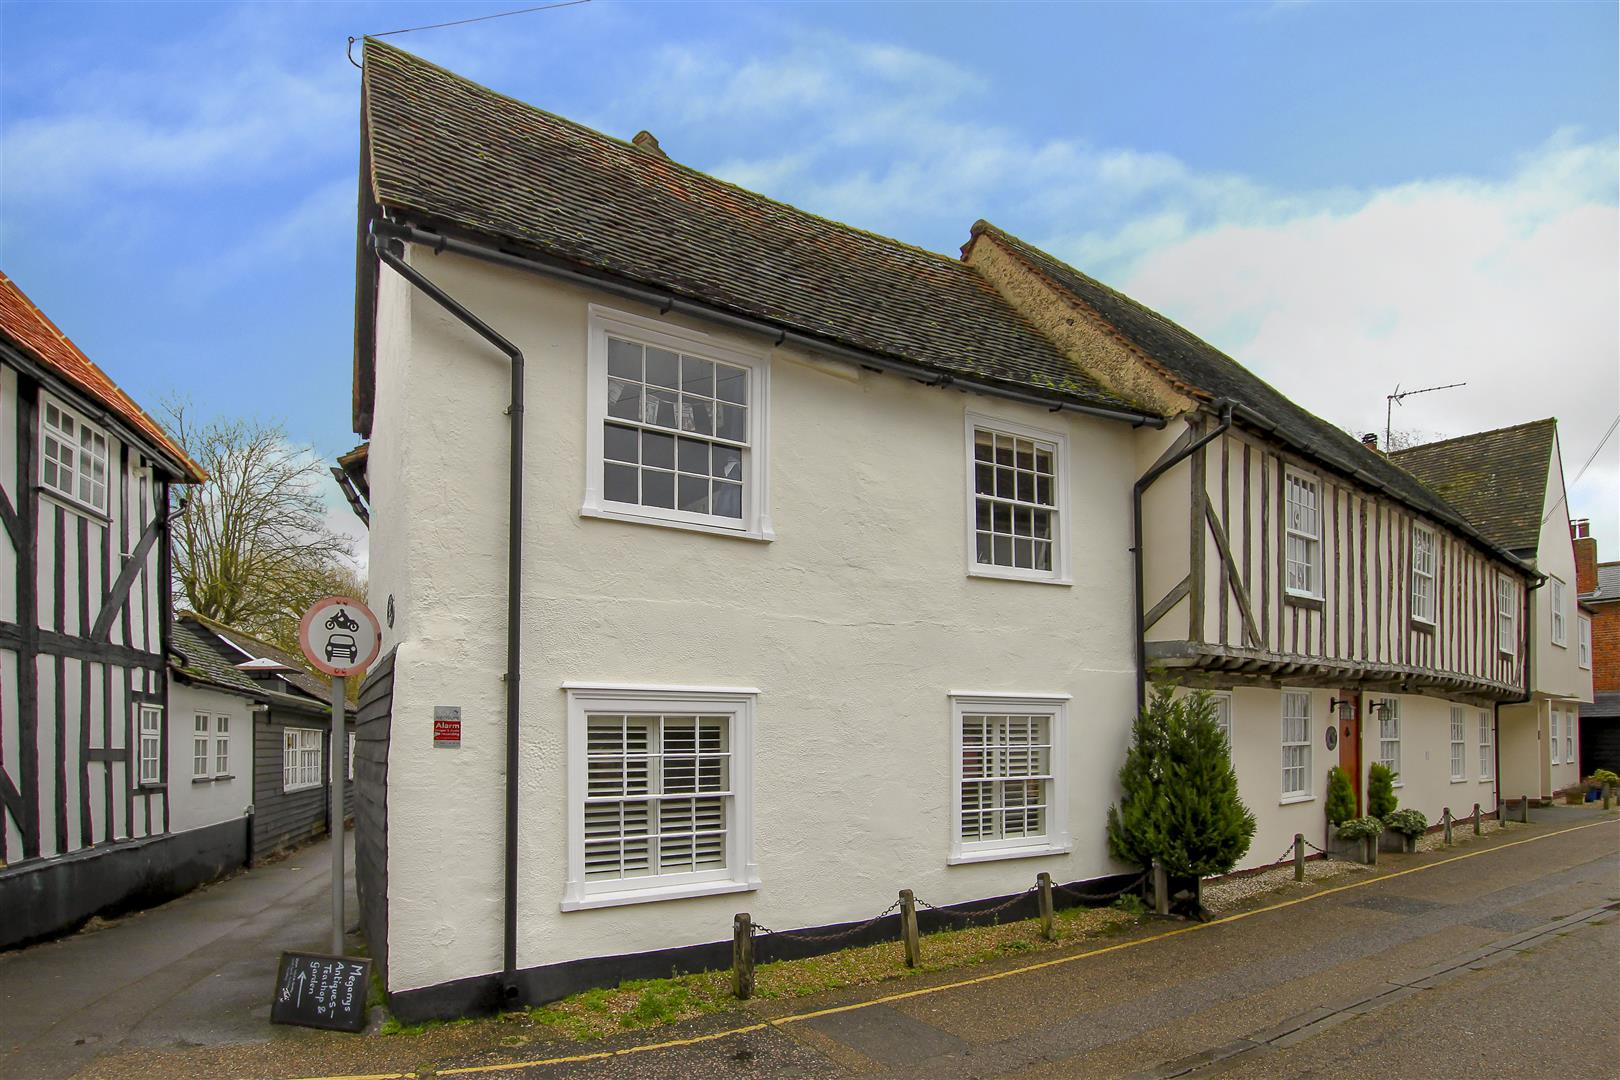 Church Street, Blackmore, Ingatestone